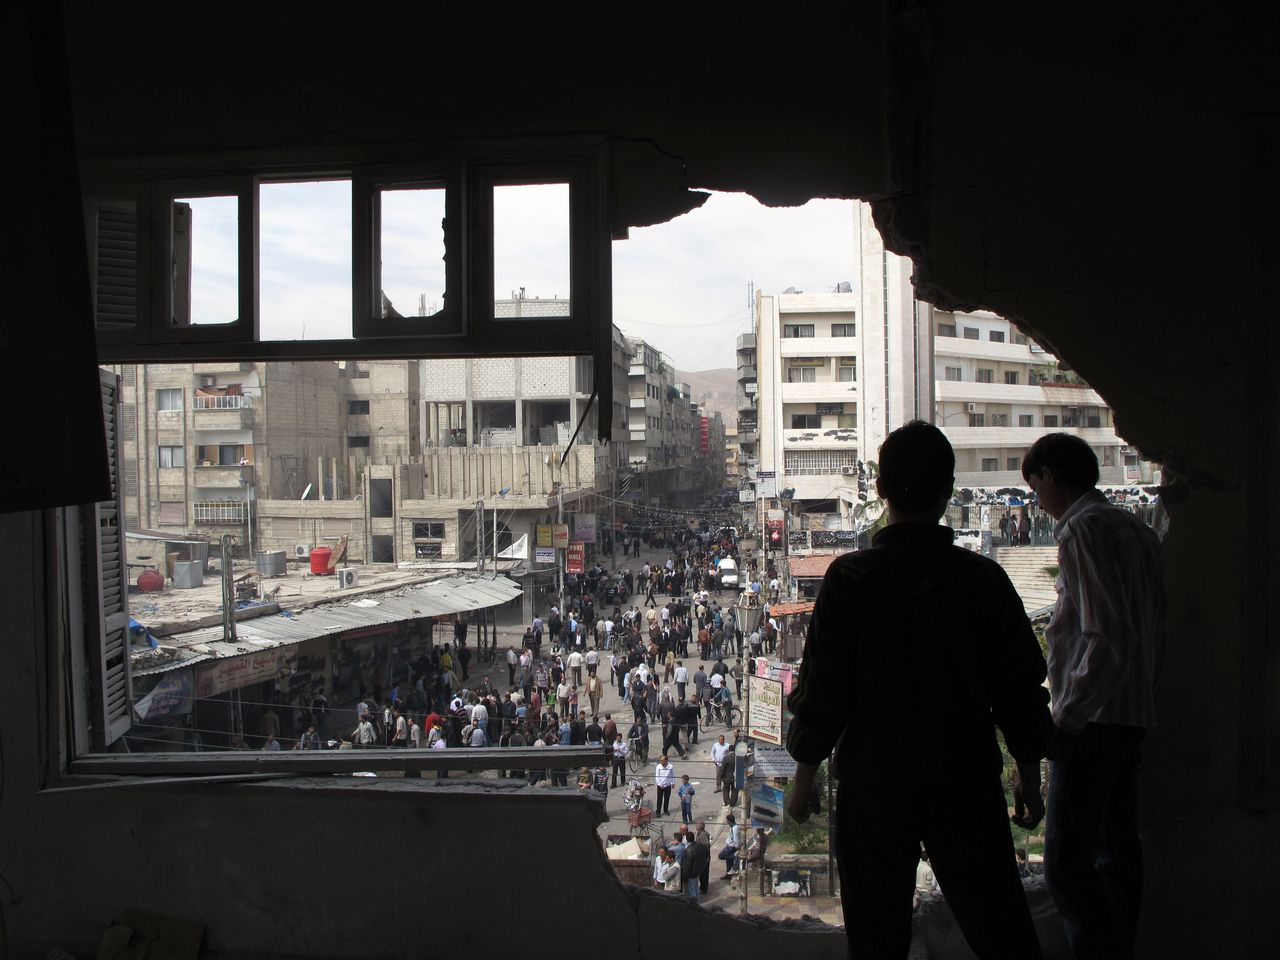 Syrian youth stand in a building damaged by tank shells in a neighborhood of Damascus, Syria, after a raid by Syrian troops killed several rebels and civilians Thursday, April 5, 2012. Syrian troops launched a fierce assault Thursday, days ahead of a deadline for a U.N.-brokered cease-fire, with activists describing it as one of the most violent attacks around the capital since the year-old uprising began. (AP Photo)